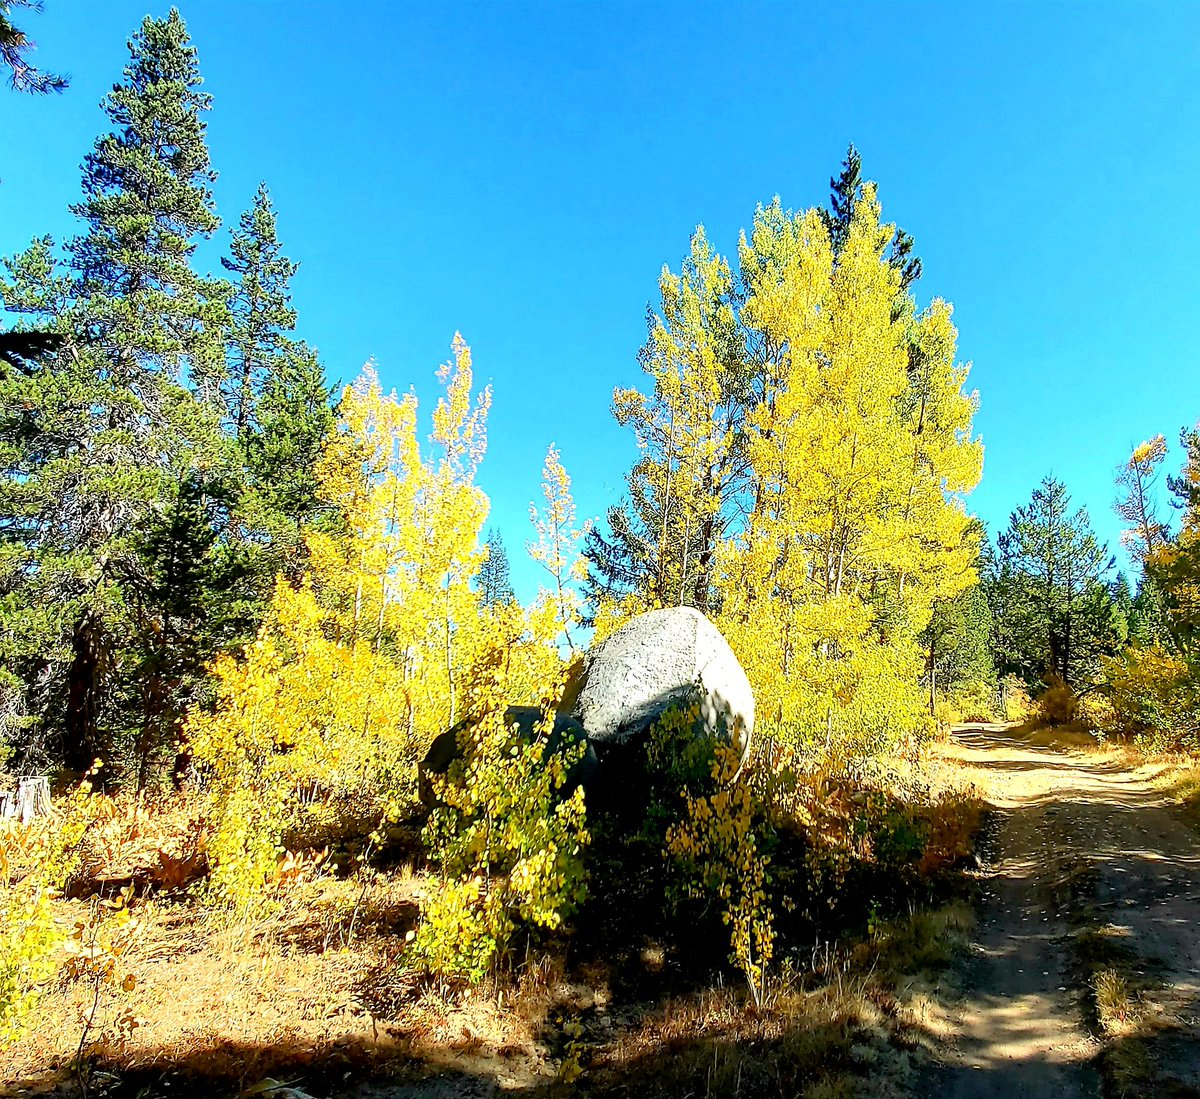 Had a really great 8 mile hike today behind #TahoeDonner with friends Mike and Wendy. Delightful weather, amazing scenery and friendly conversation.  #LoveTruckee #TahoeBasin https://t.co/QKYJat9ITg